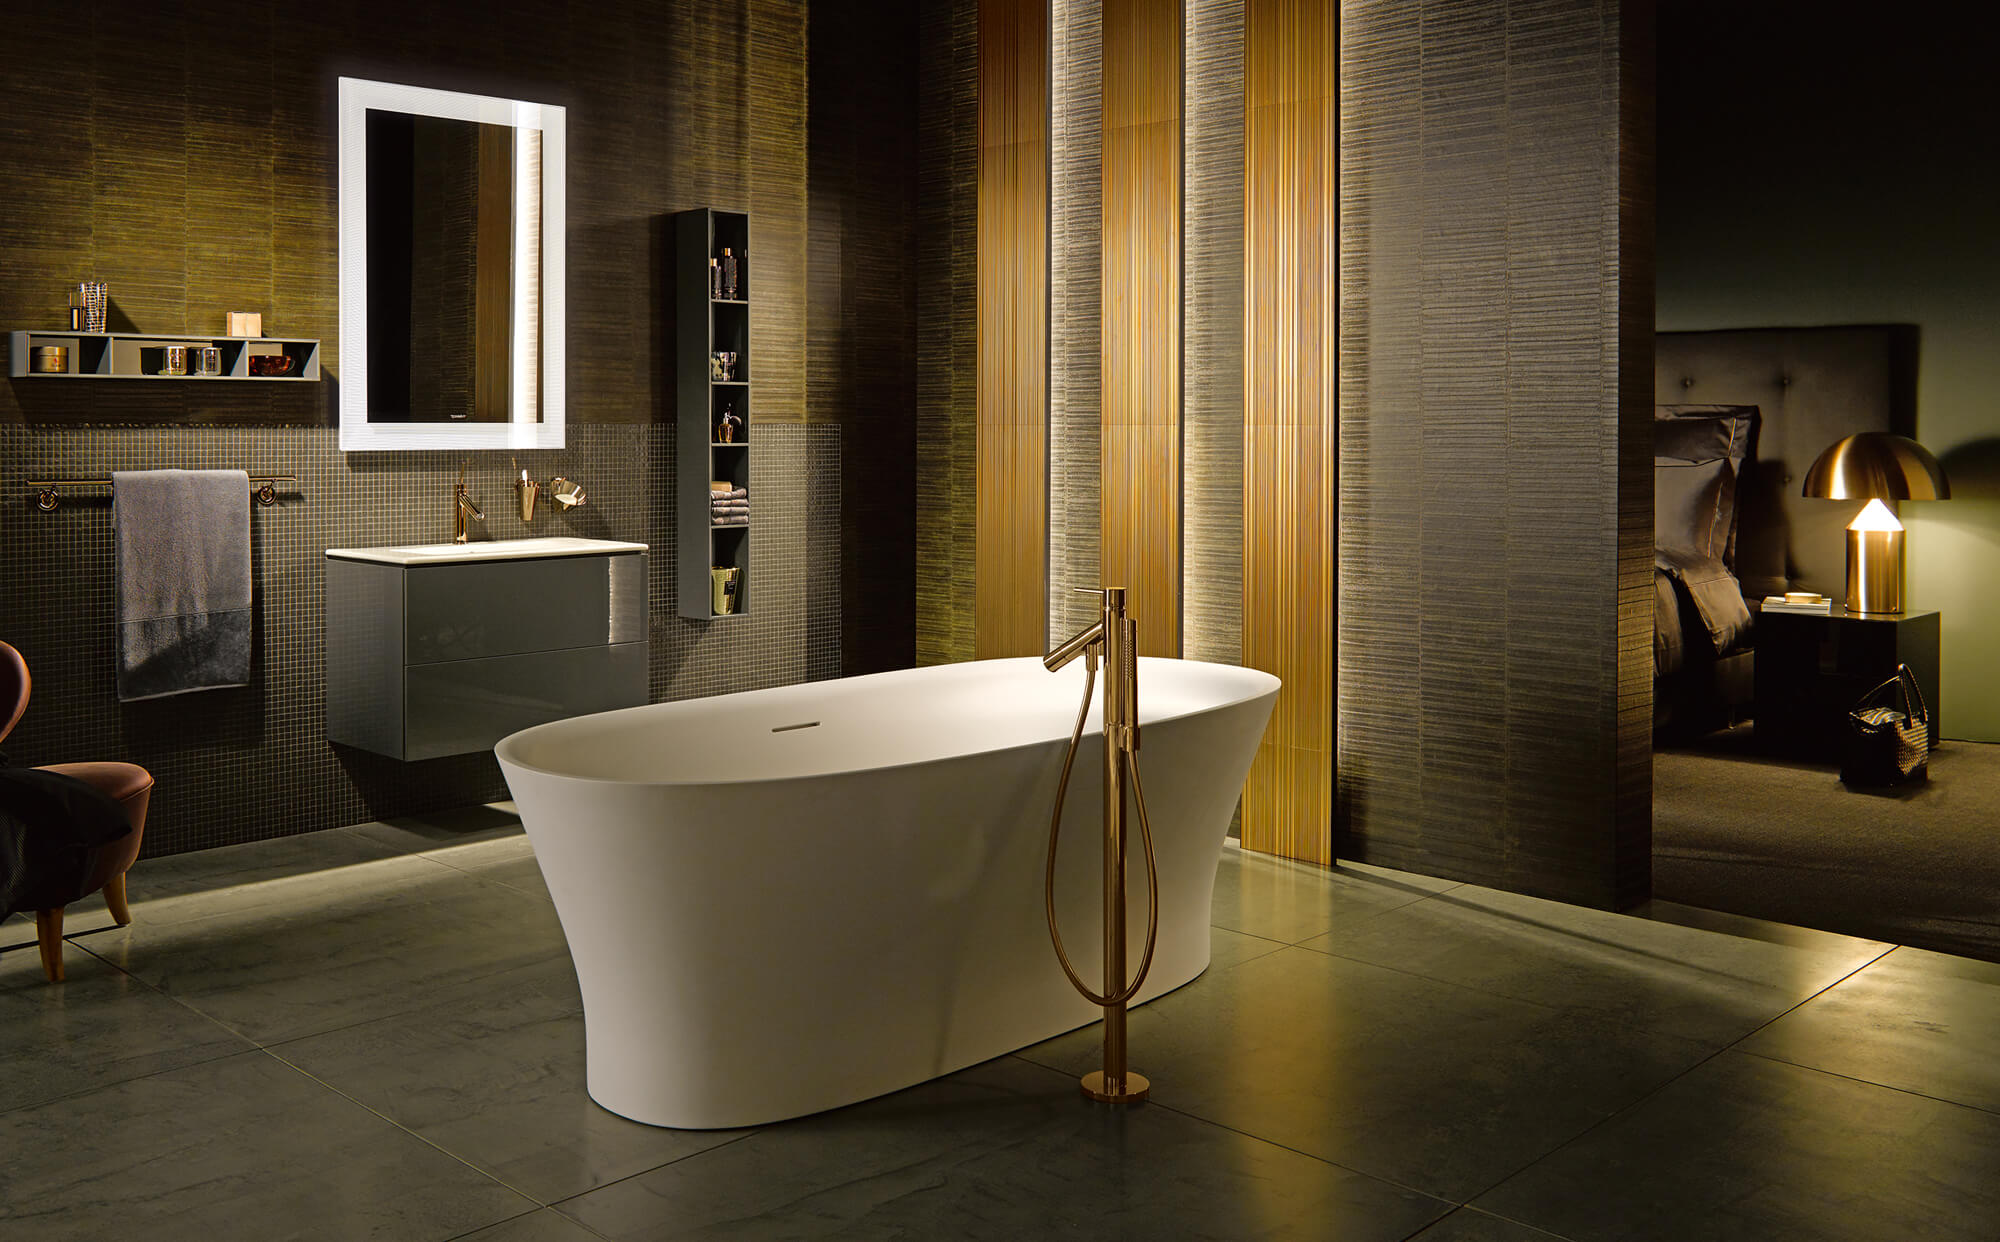 High quality bathroom design and installation greater manchester cheshire Bathroom design and installation gloucestershire